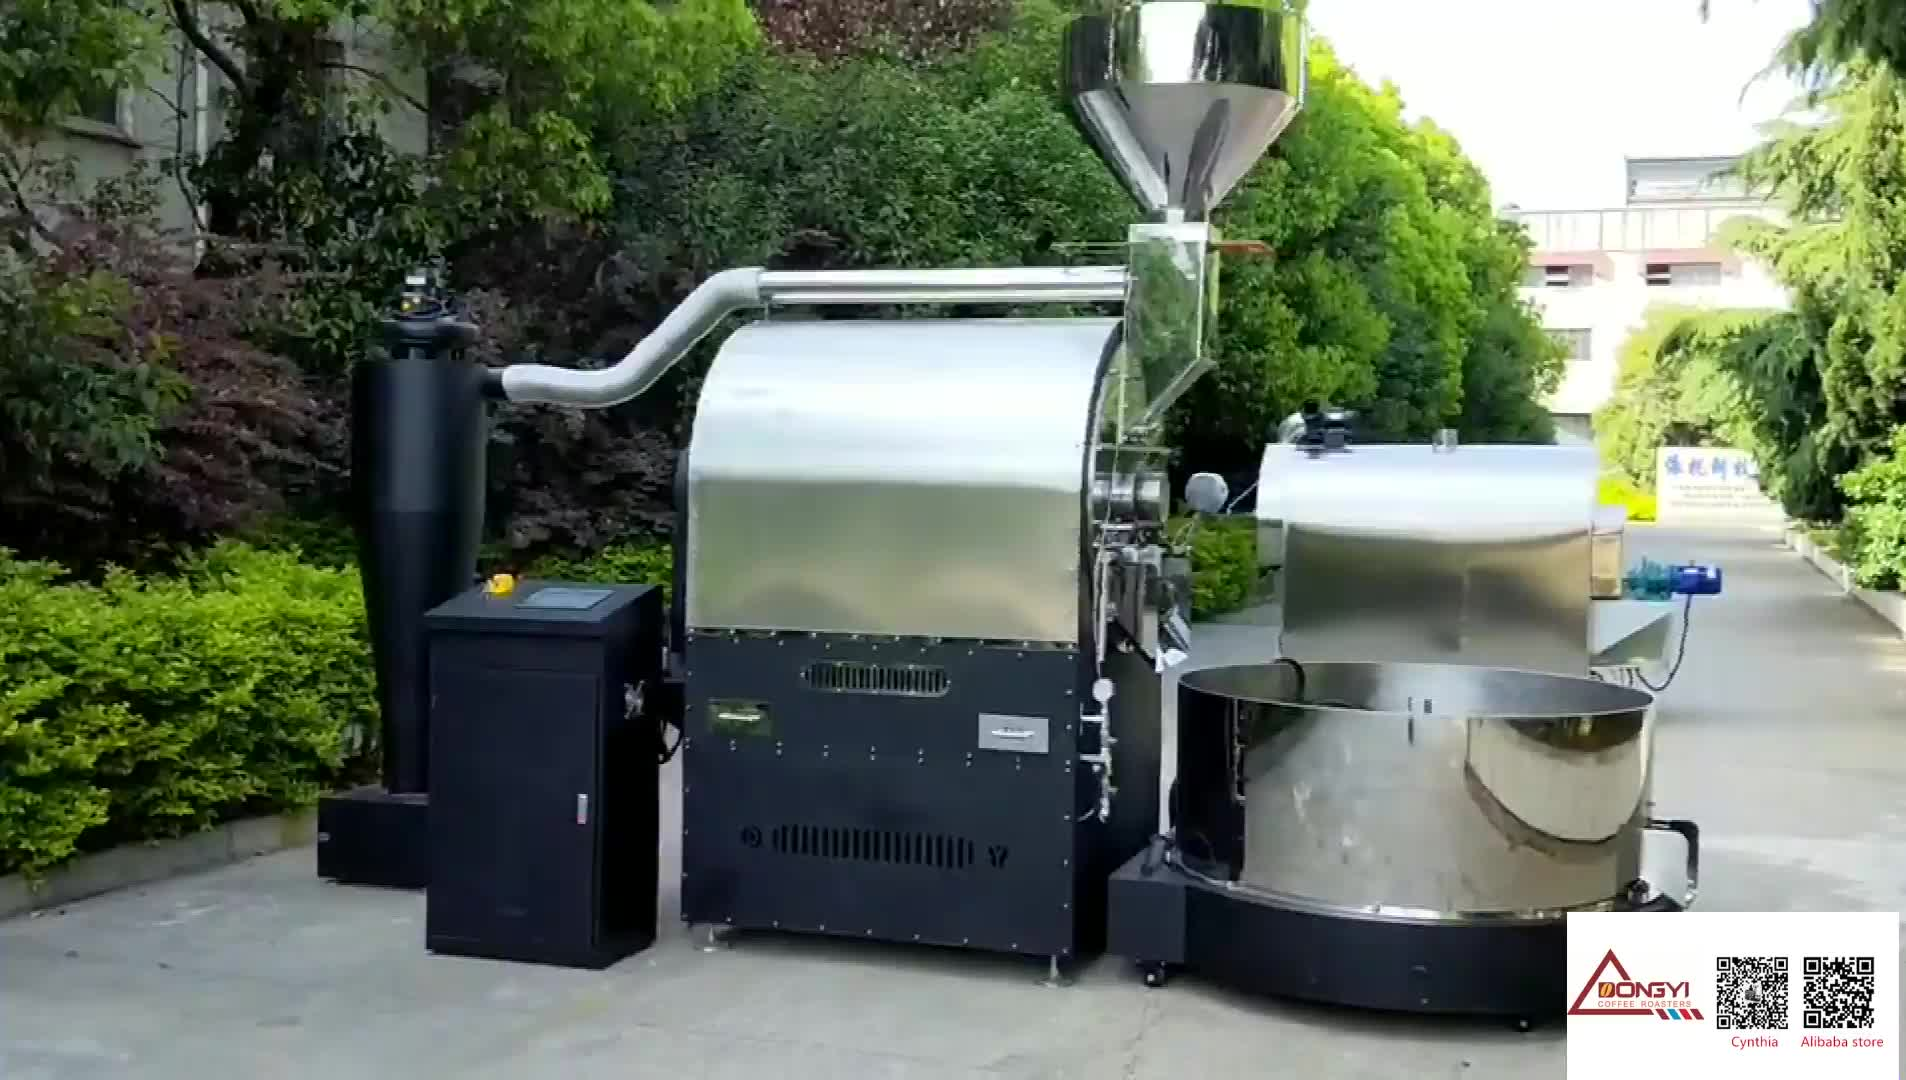 Dongyi Turkey style industrial coffee roaster 50kg 60kg coffee roasting machine with lower FOB price by updated PLC